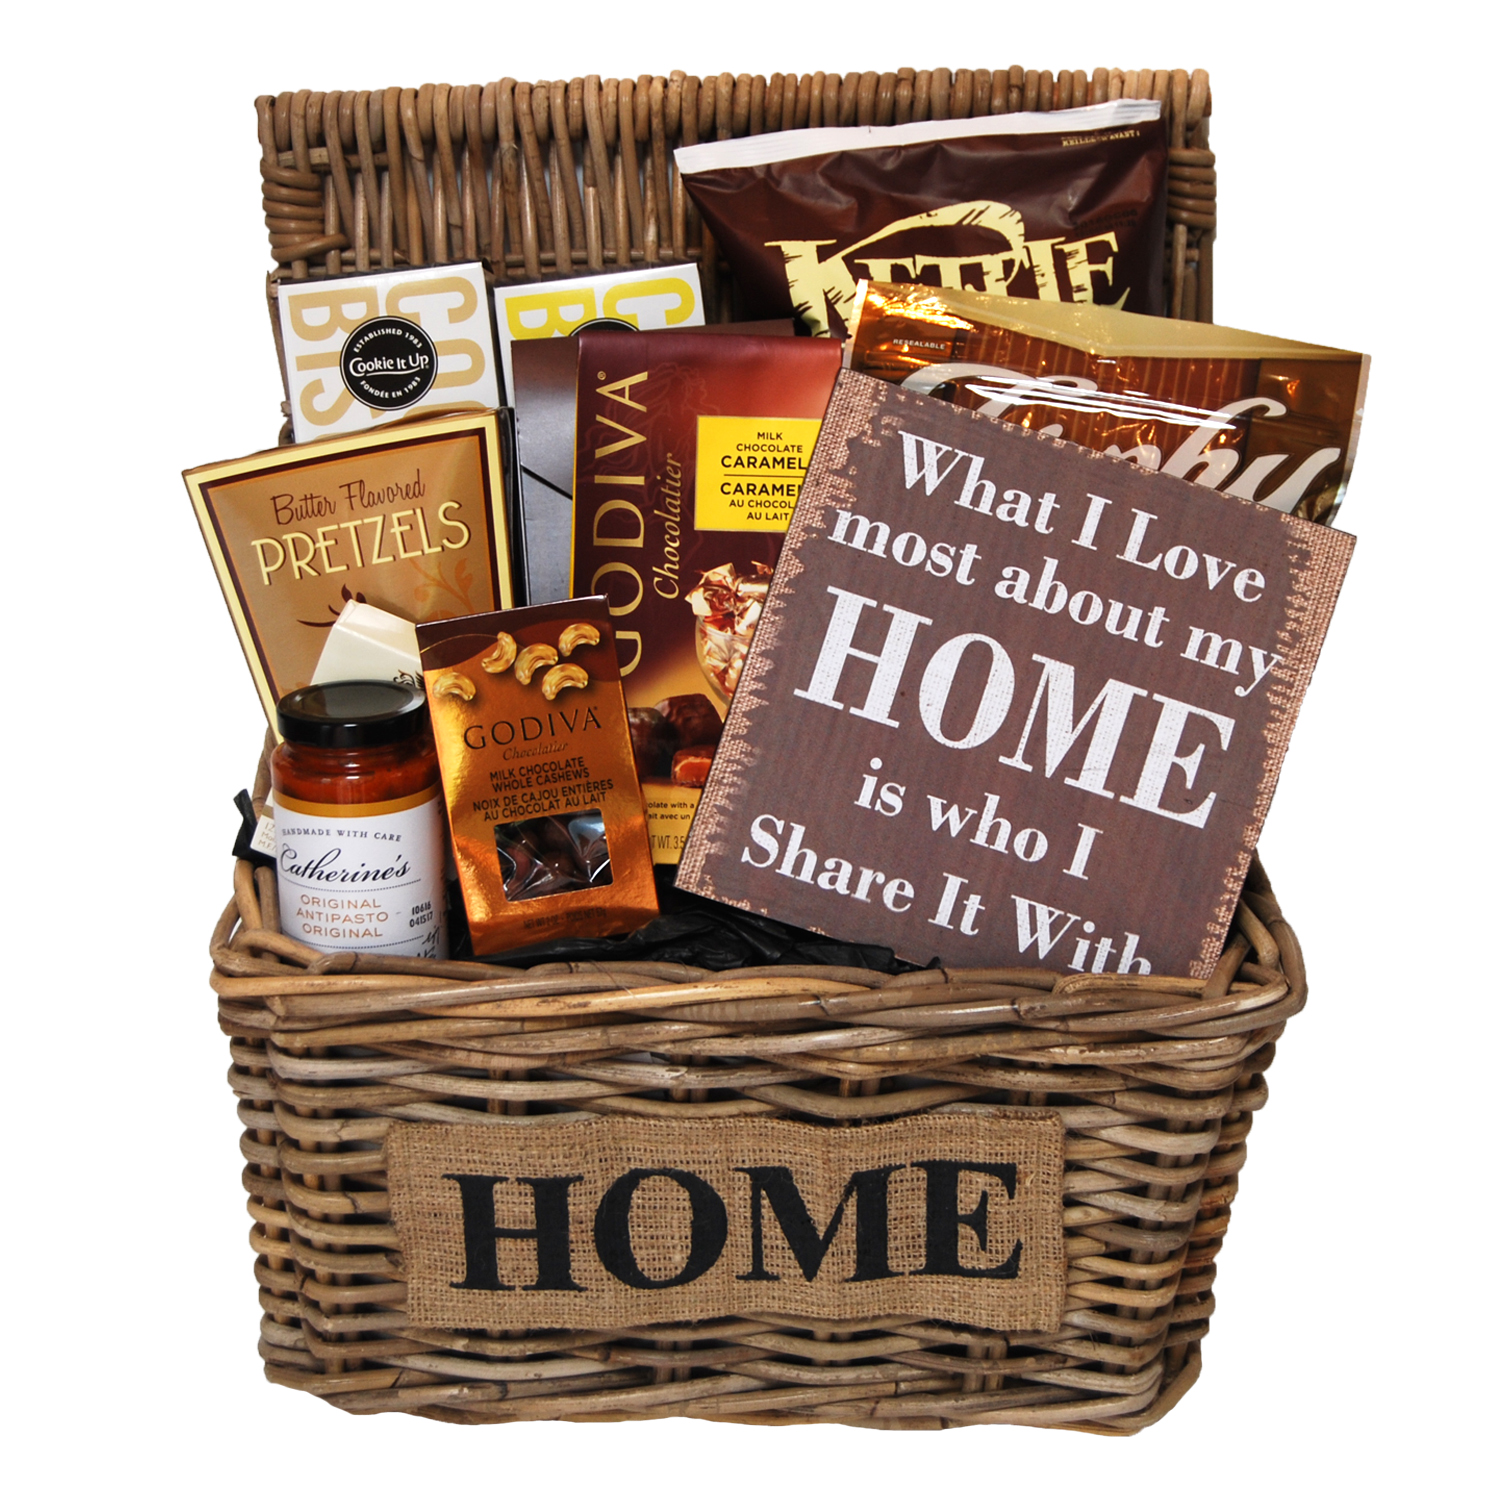 Welcome Home Md Welcome Home Md   HD03     150 00   Excellent Choice Baskets  EC  . Gift Basket Ideas For Welcome Home. Home Design Ideas